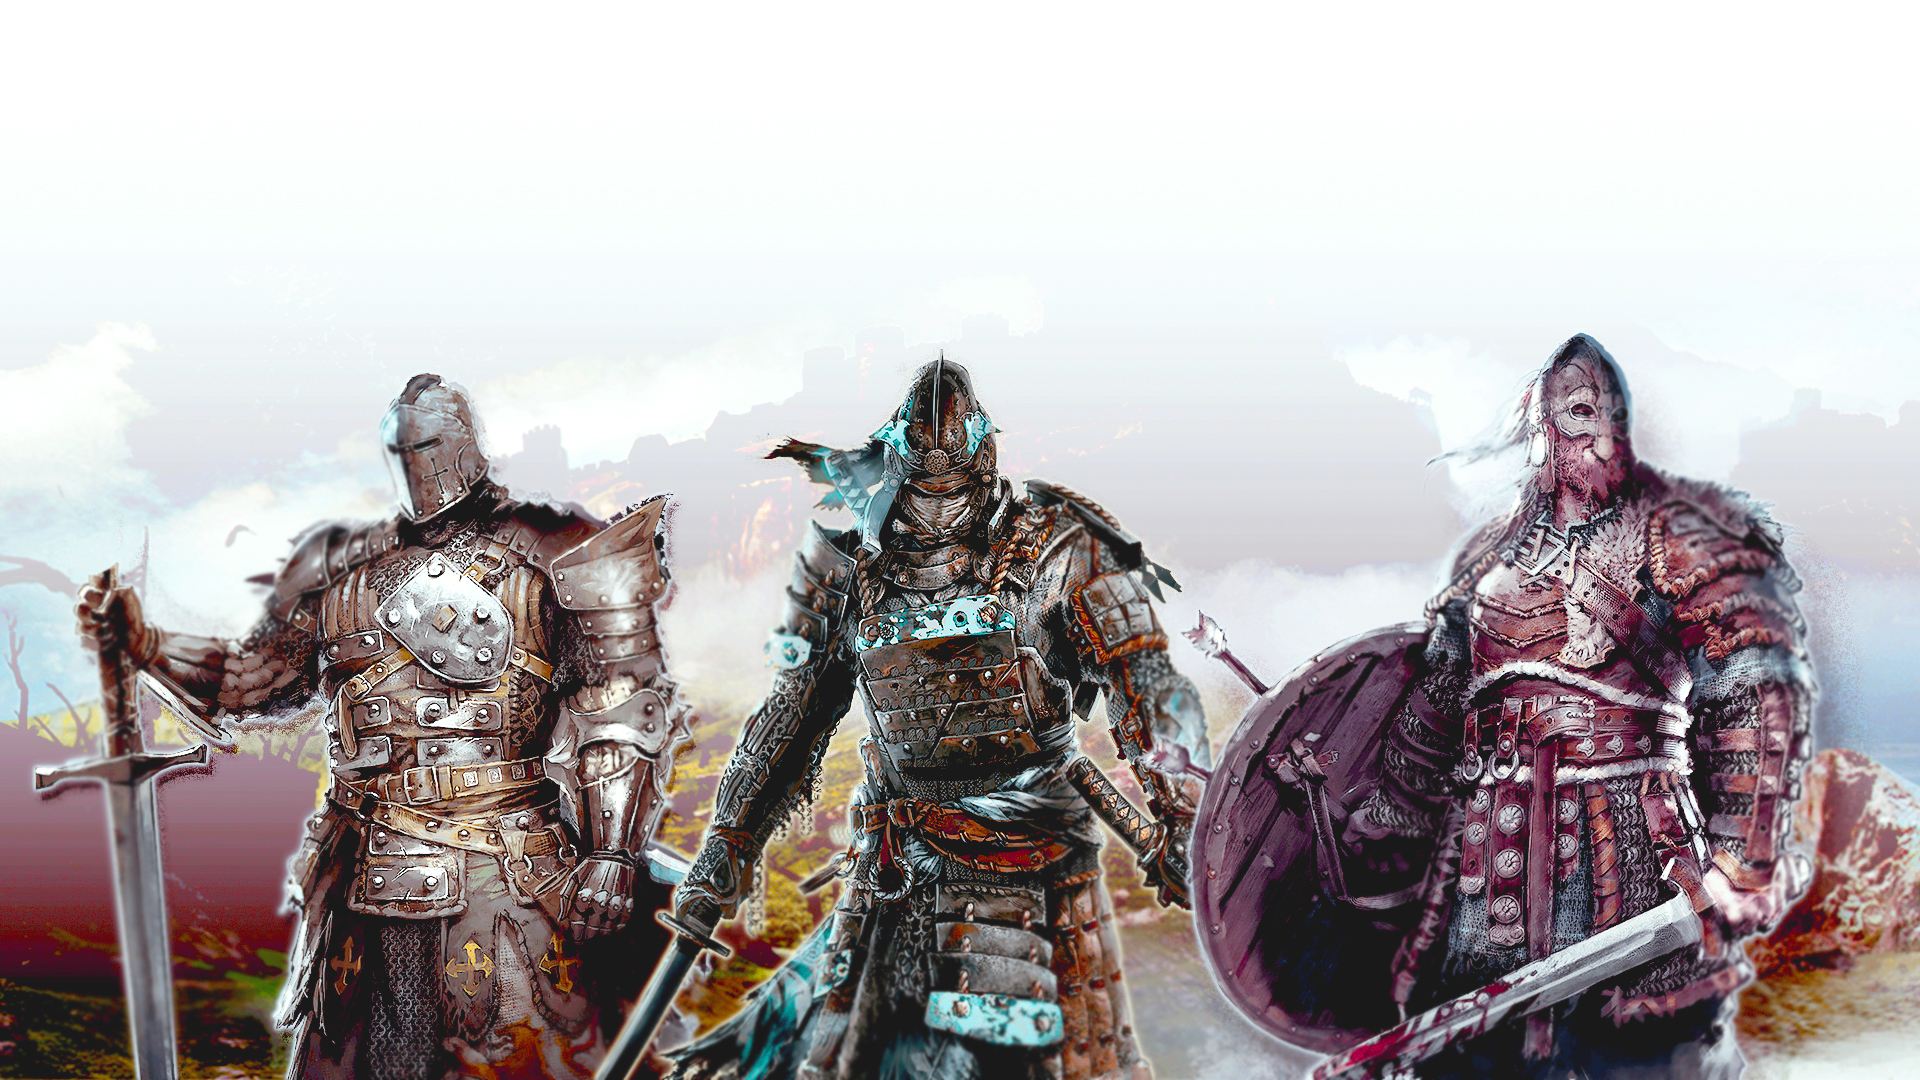 For Honor Wallpaper By UpcomingDread On DeviantArt